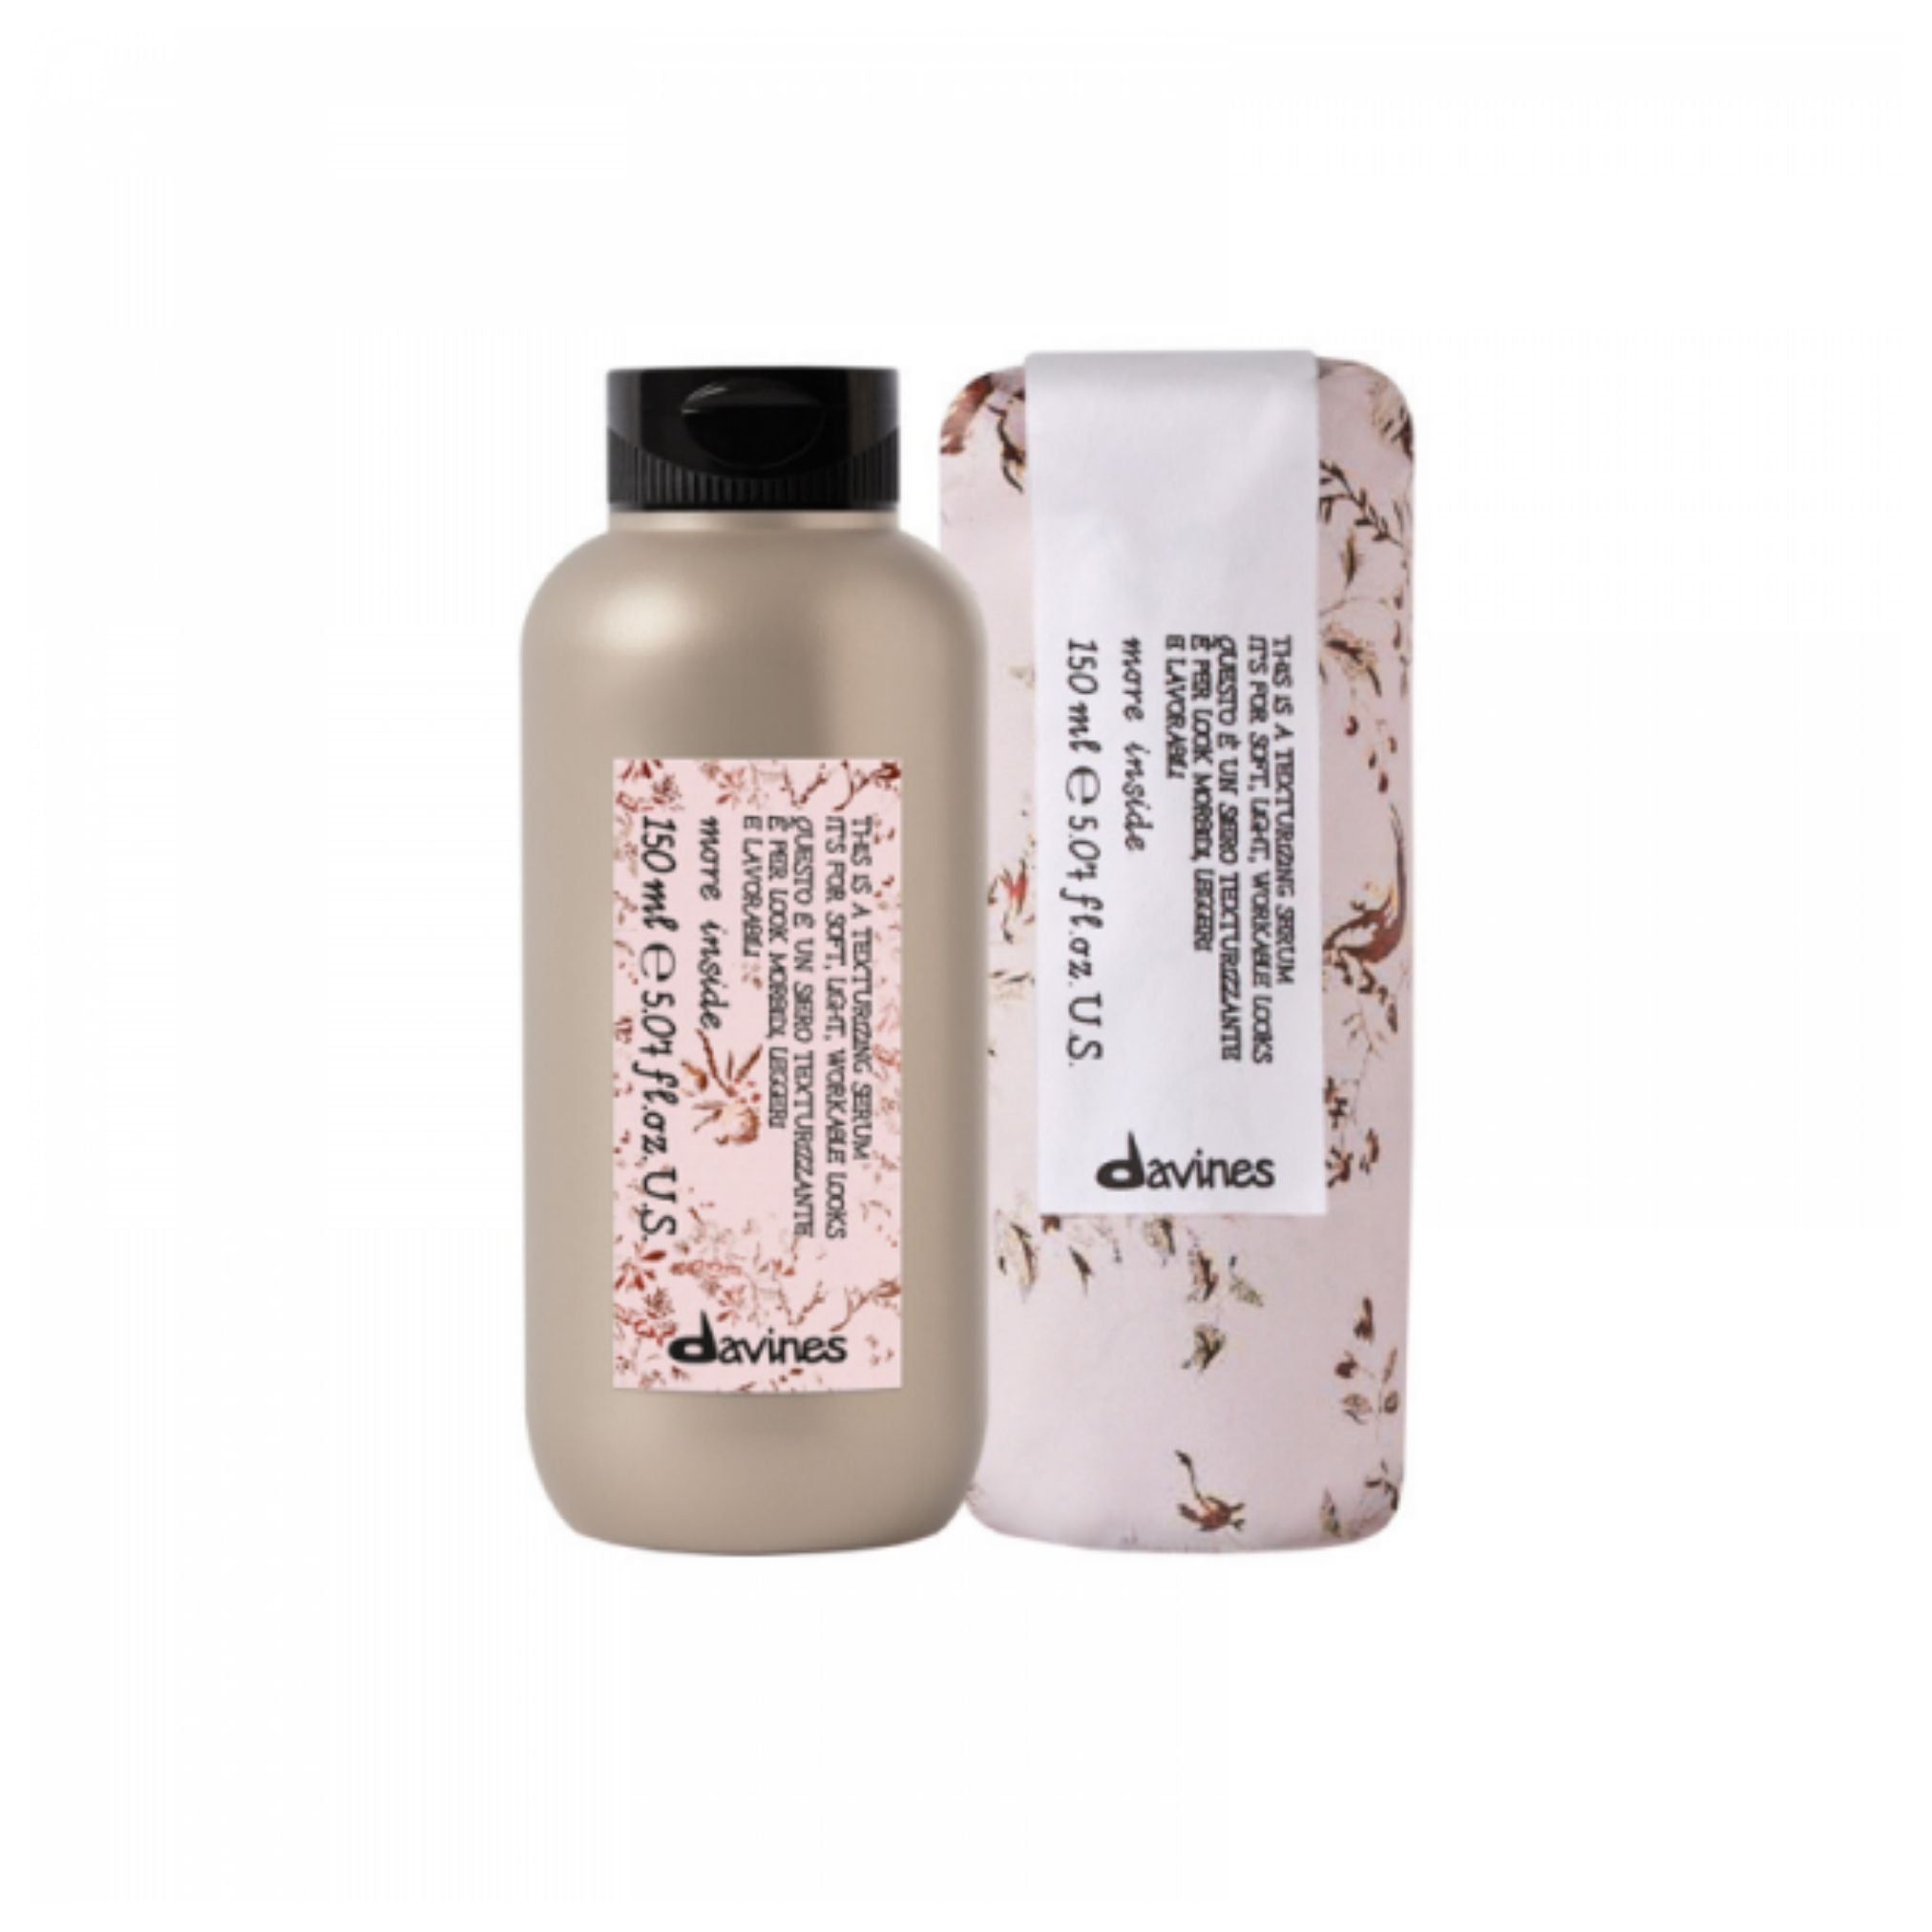 Davines Texturizing Serum 150ml